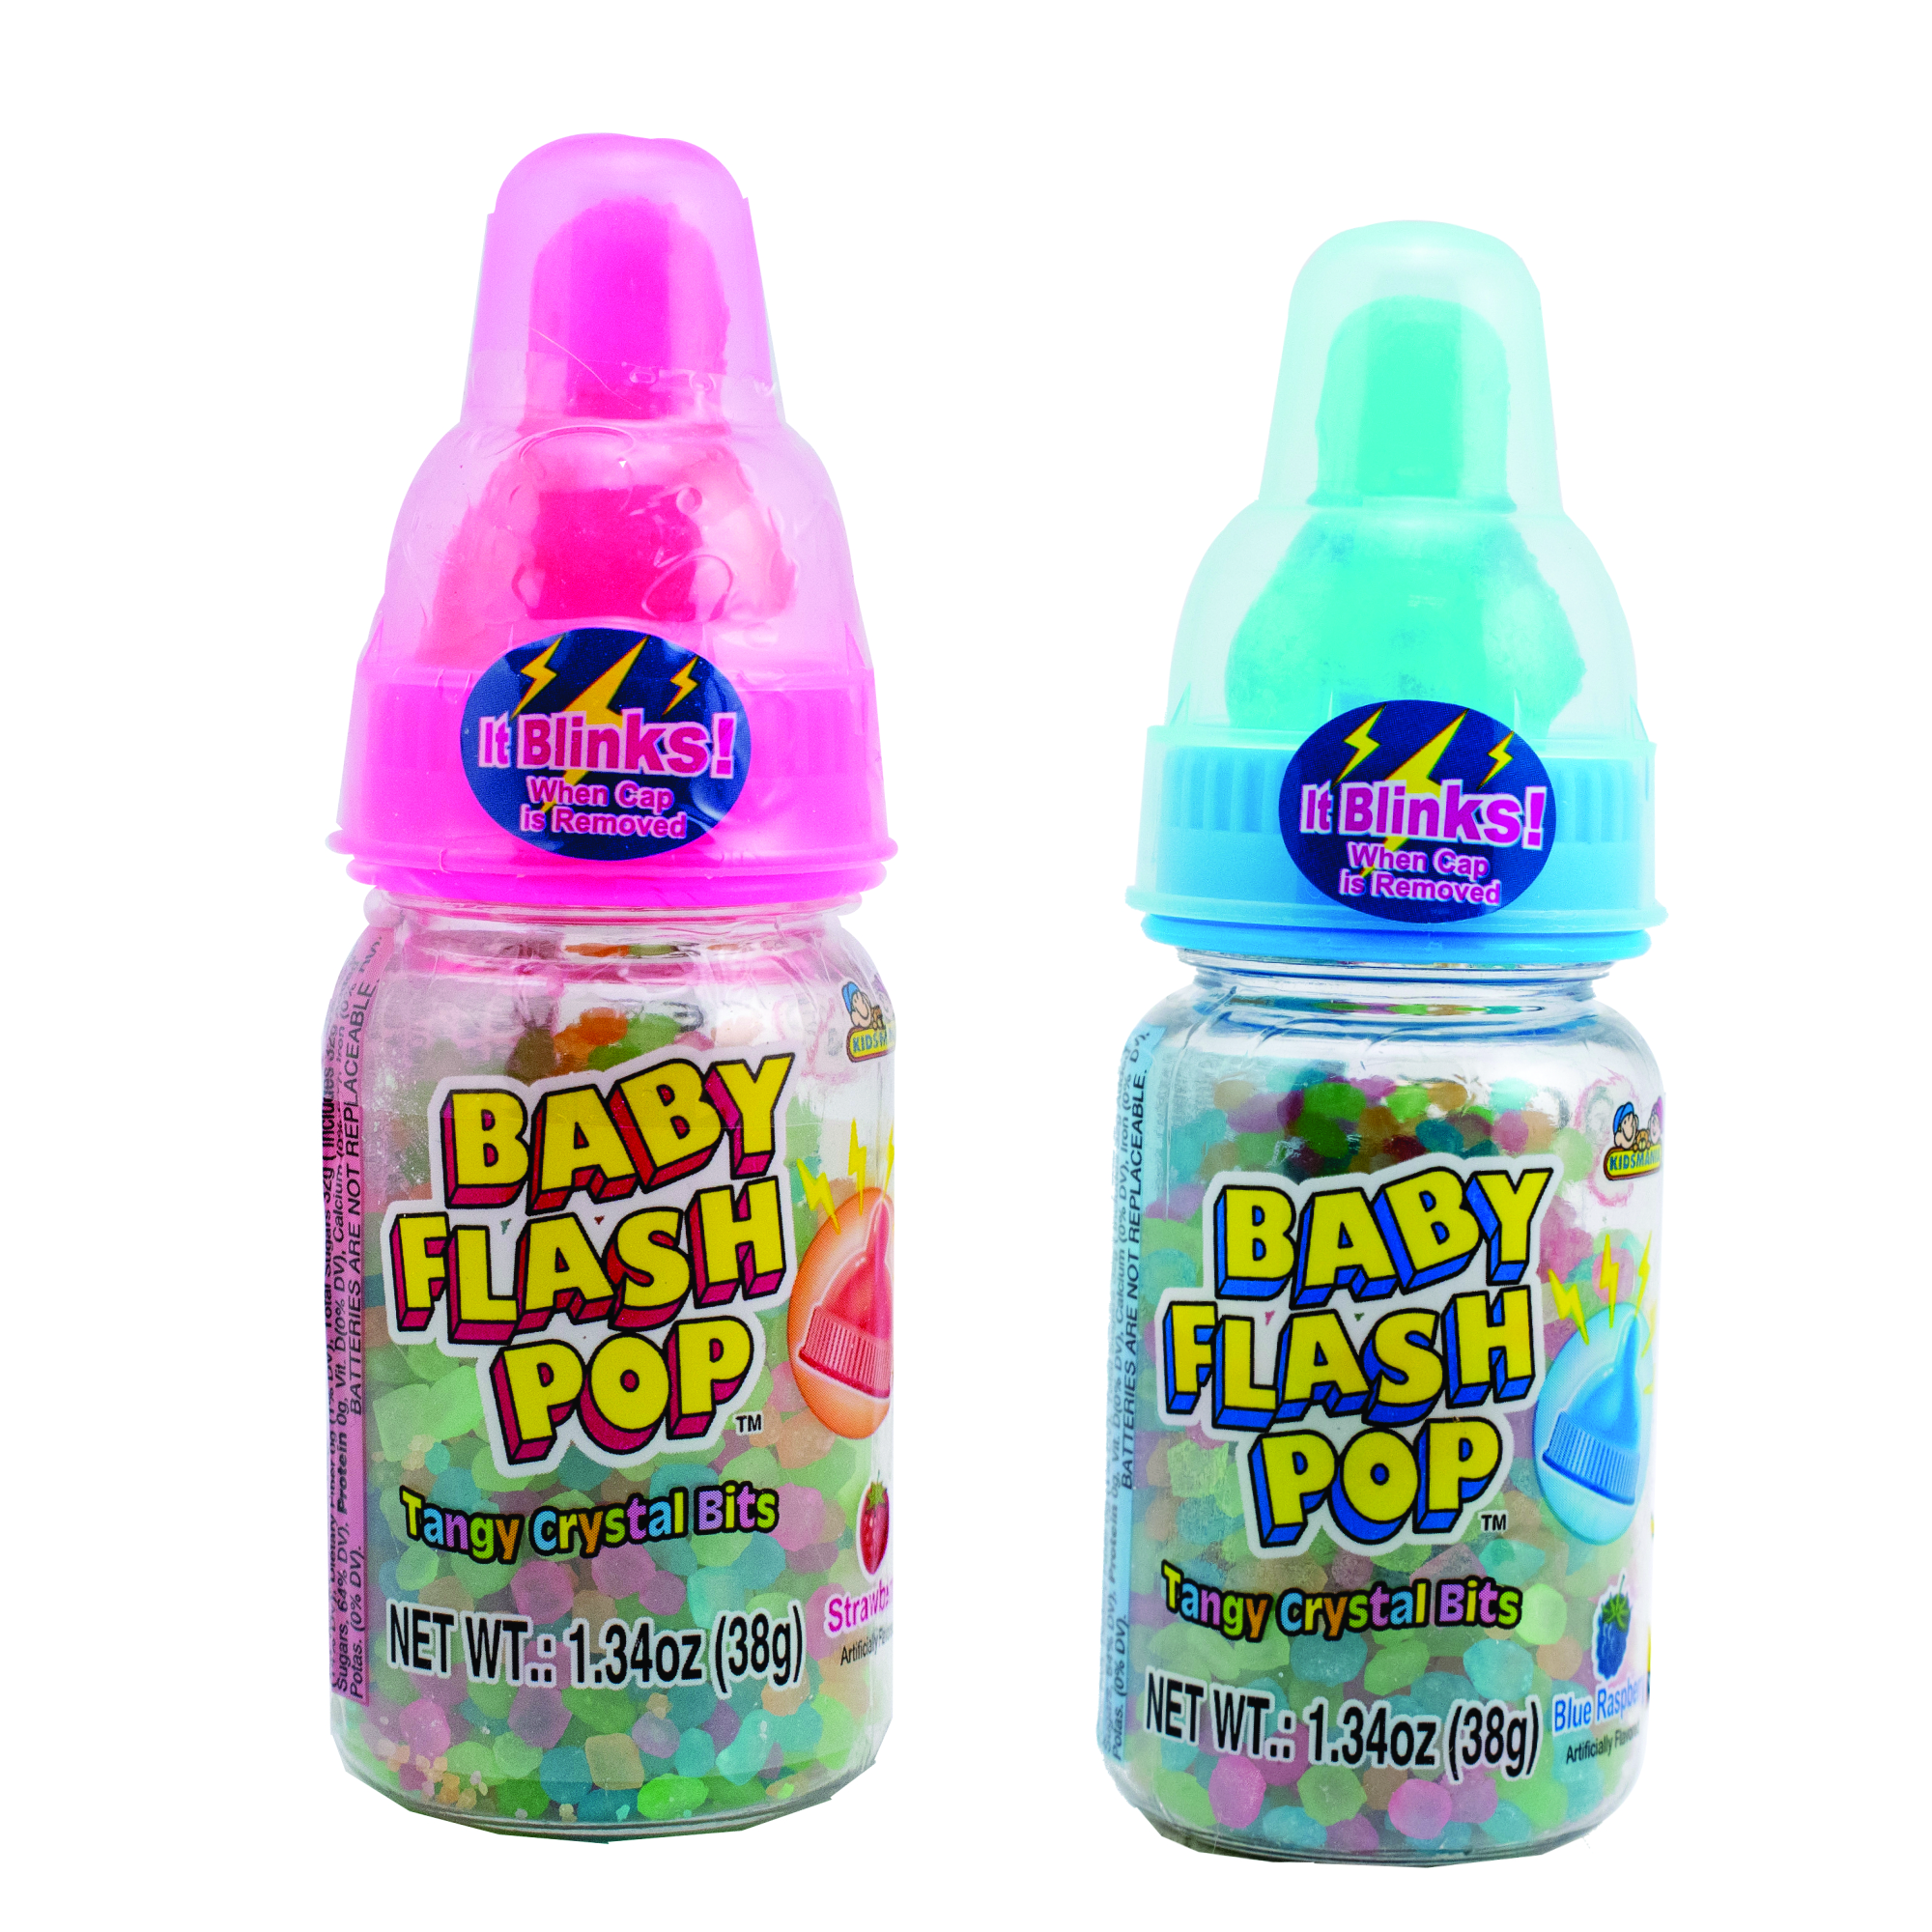 C493 - Baby Flash Pop